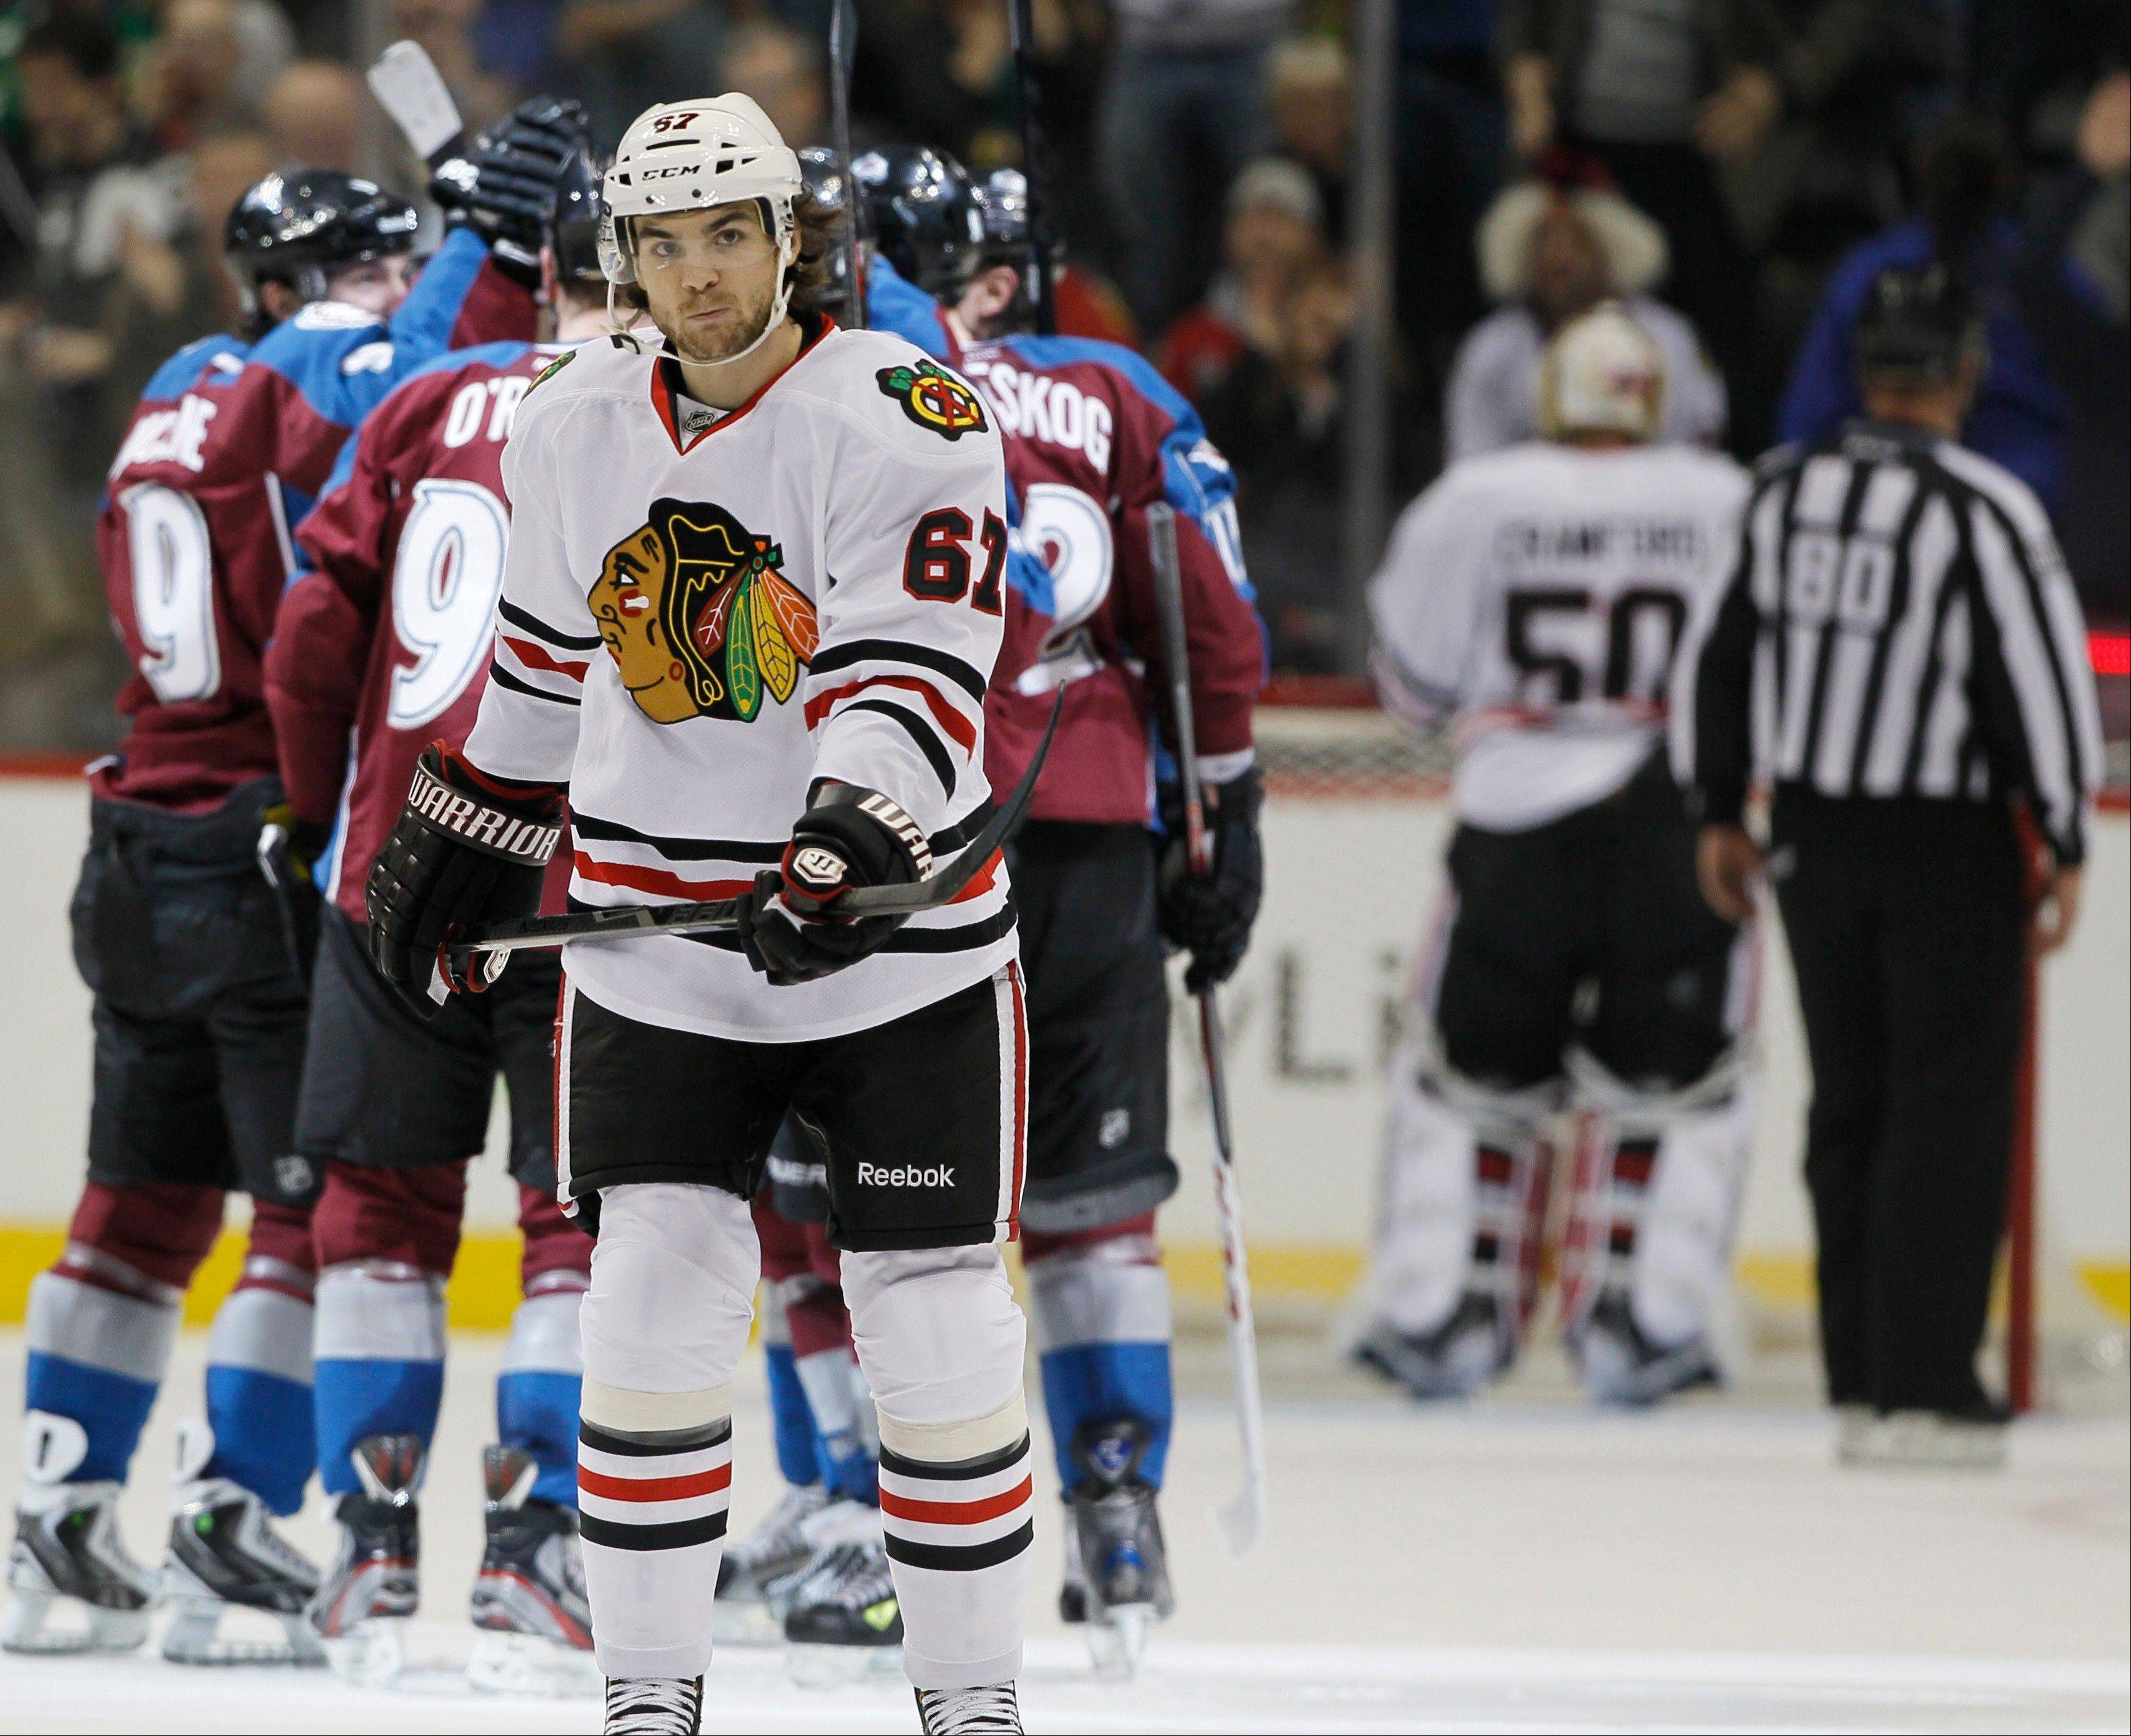 On March 8, the Hawks finally lost a game in regulation. The Colorado Avalanche beat the Blackhawks in Denver, 6-2, thanks to four straight goals in the second period.